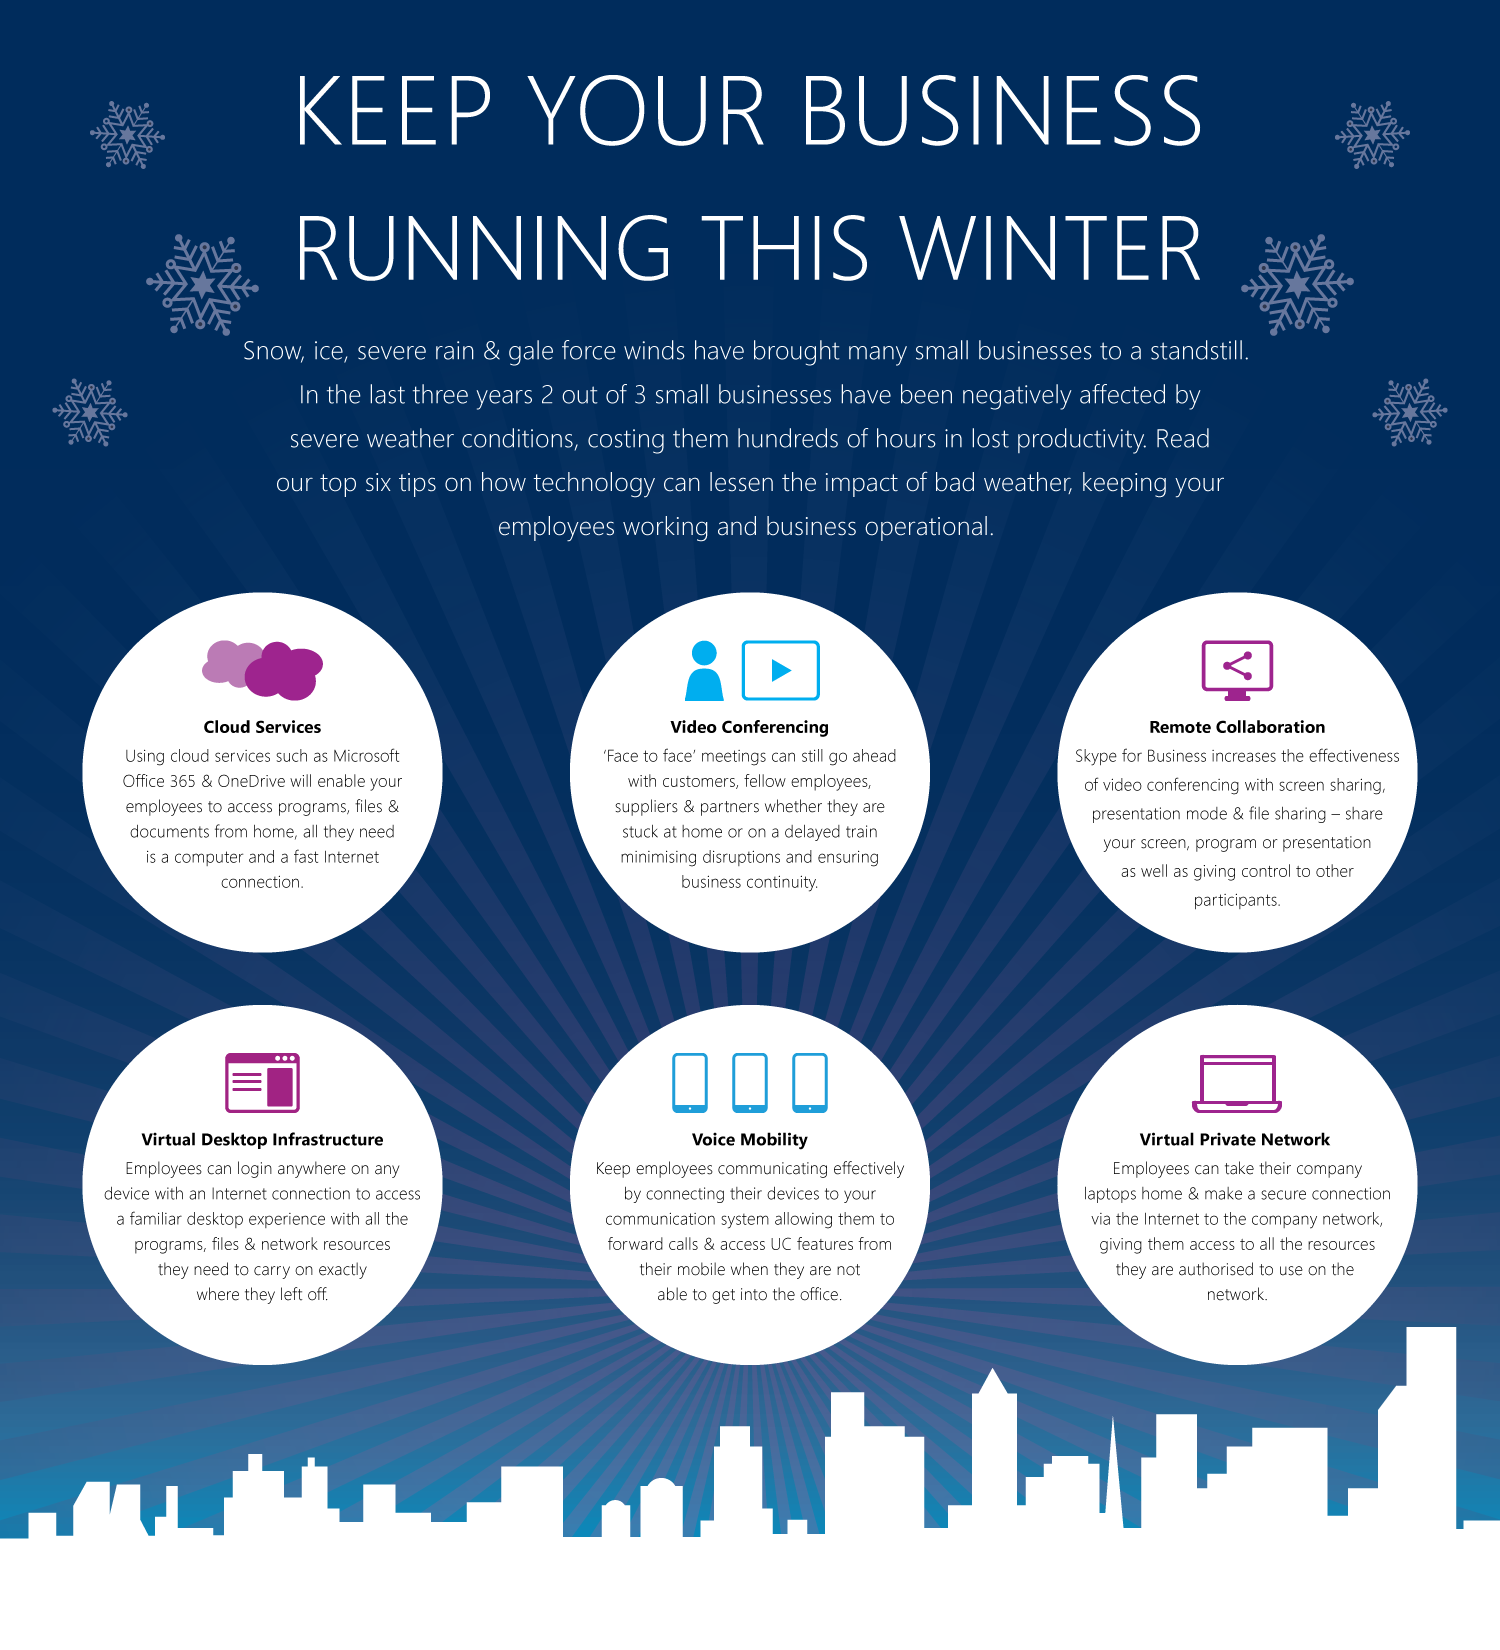 Keep your business running this winter infographic